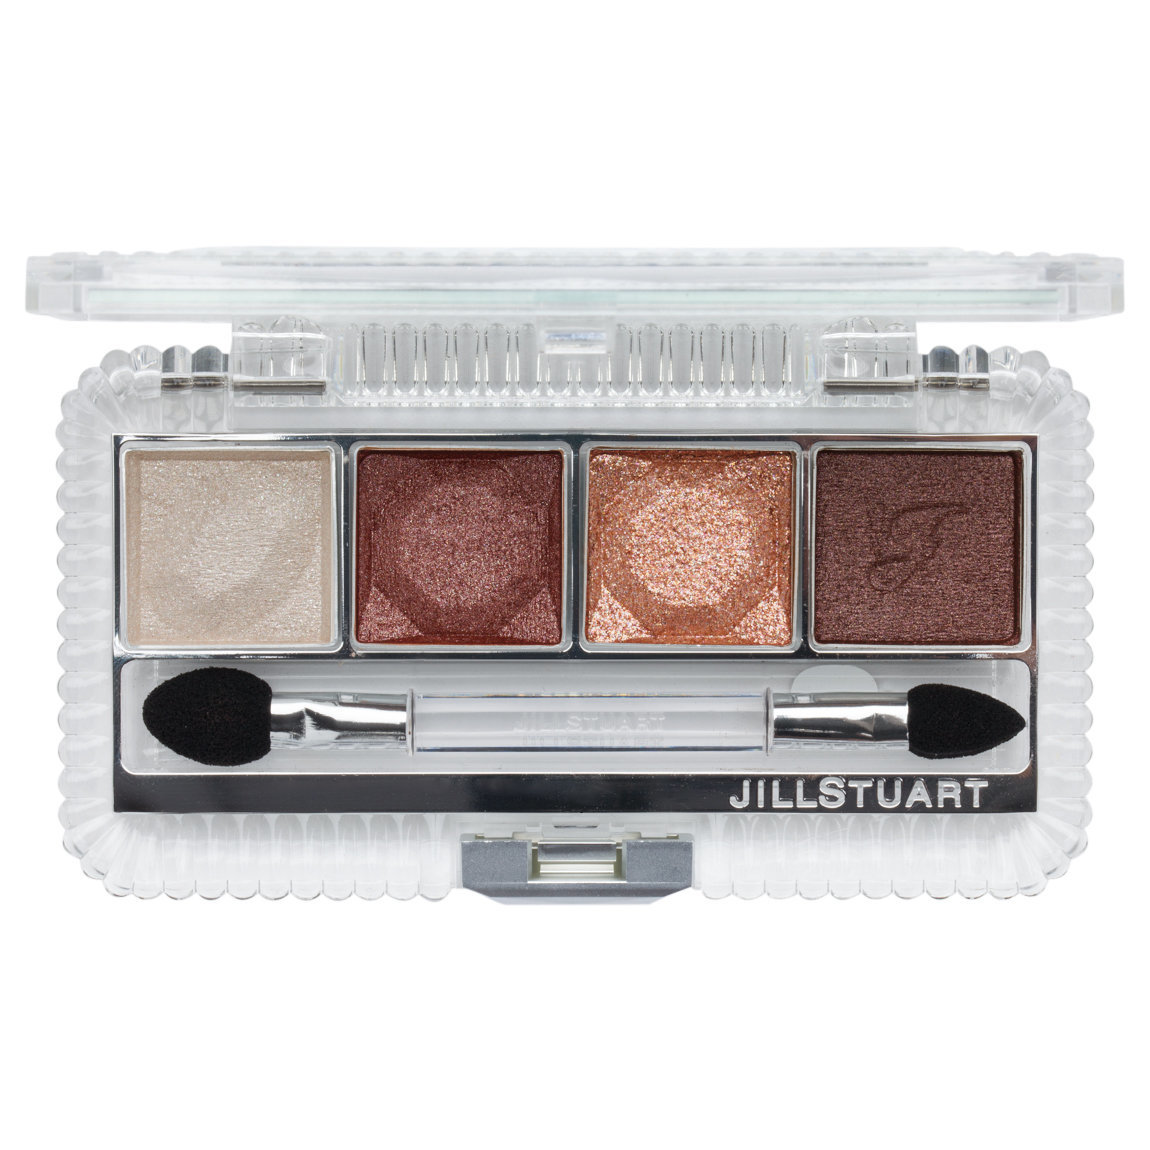 JILL STUART Beauty Eternal Couture Eyes Shimmer 01 product swatch.